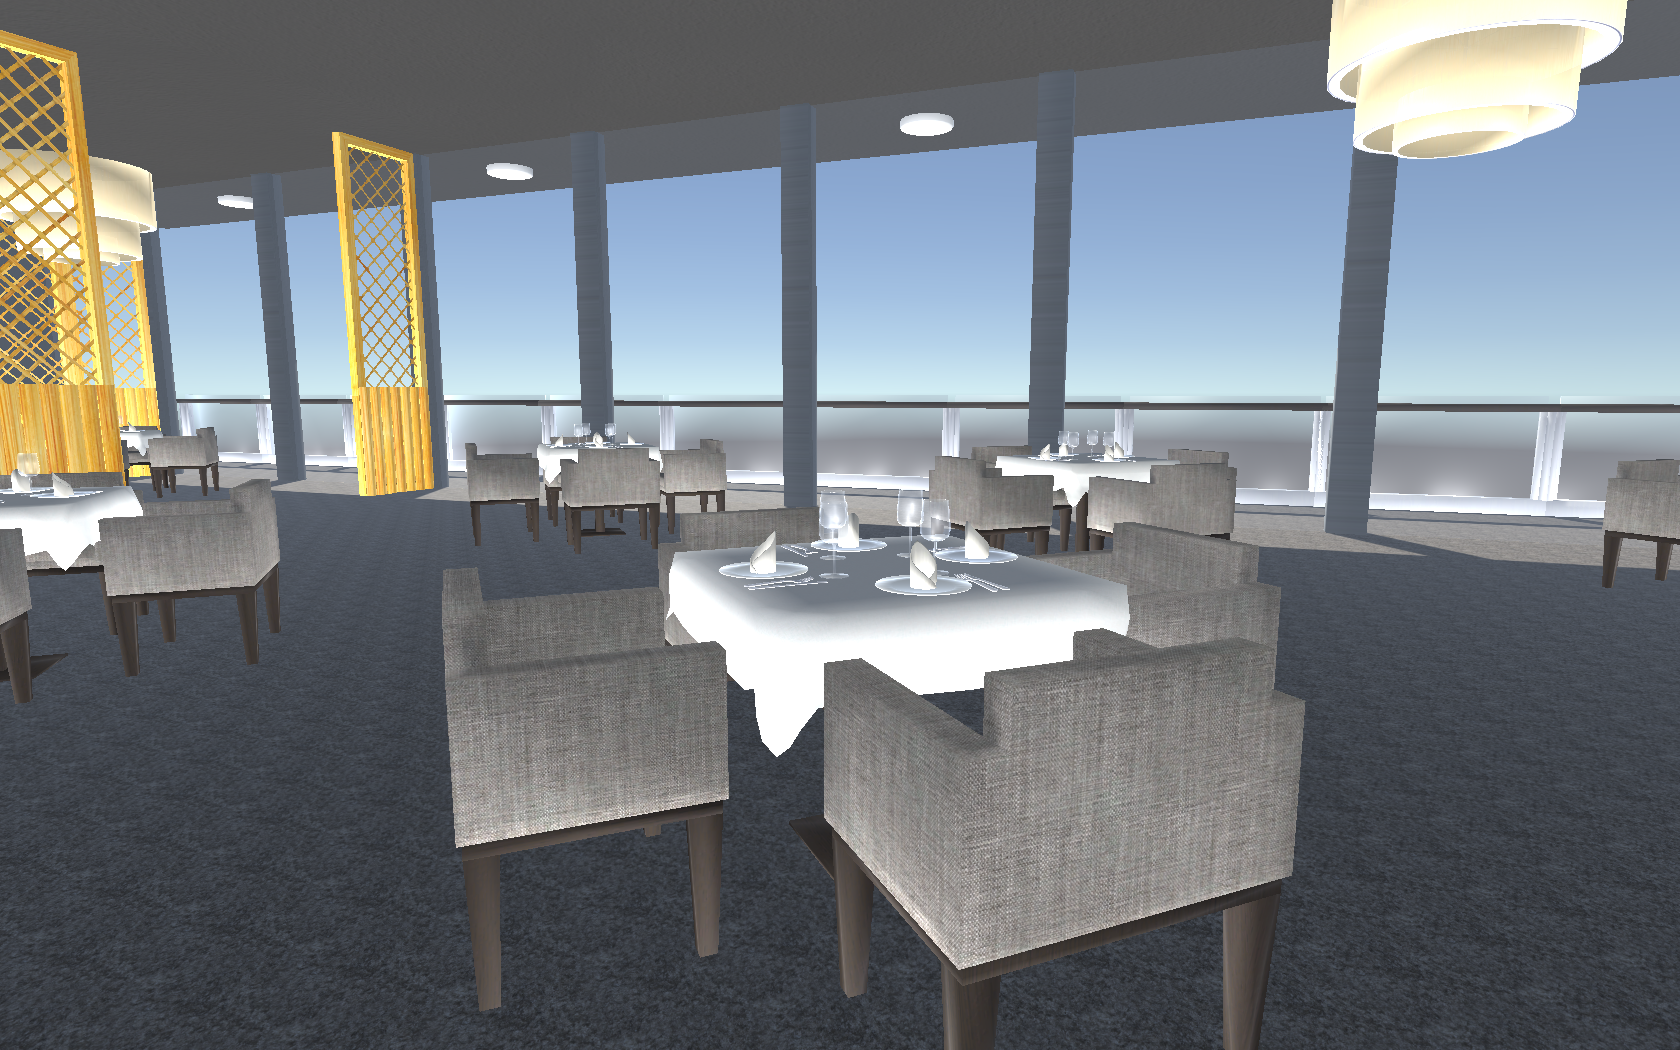 Classy dining with the world within your view.